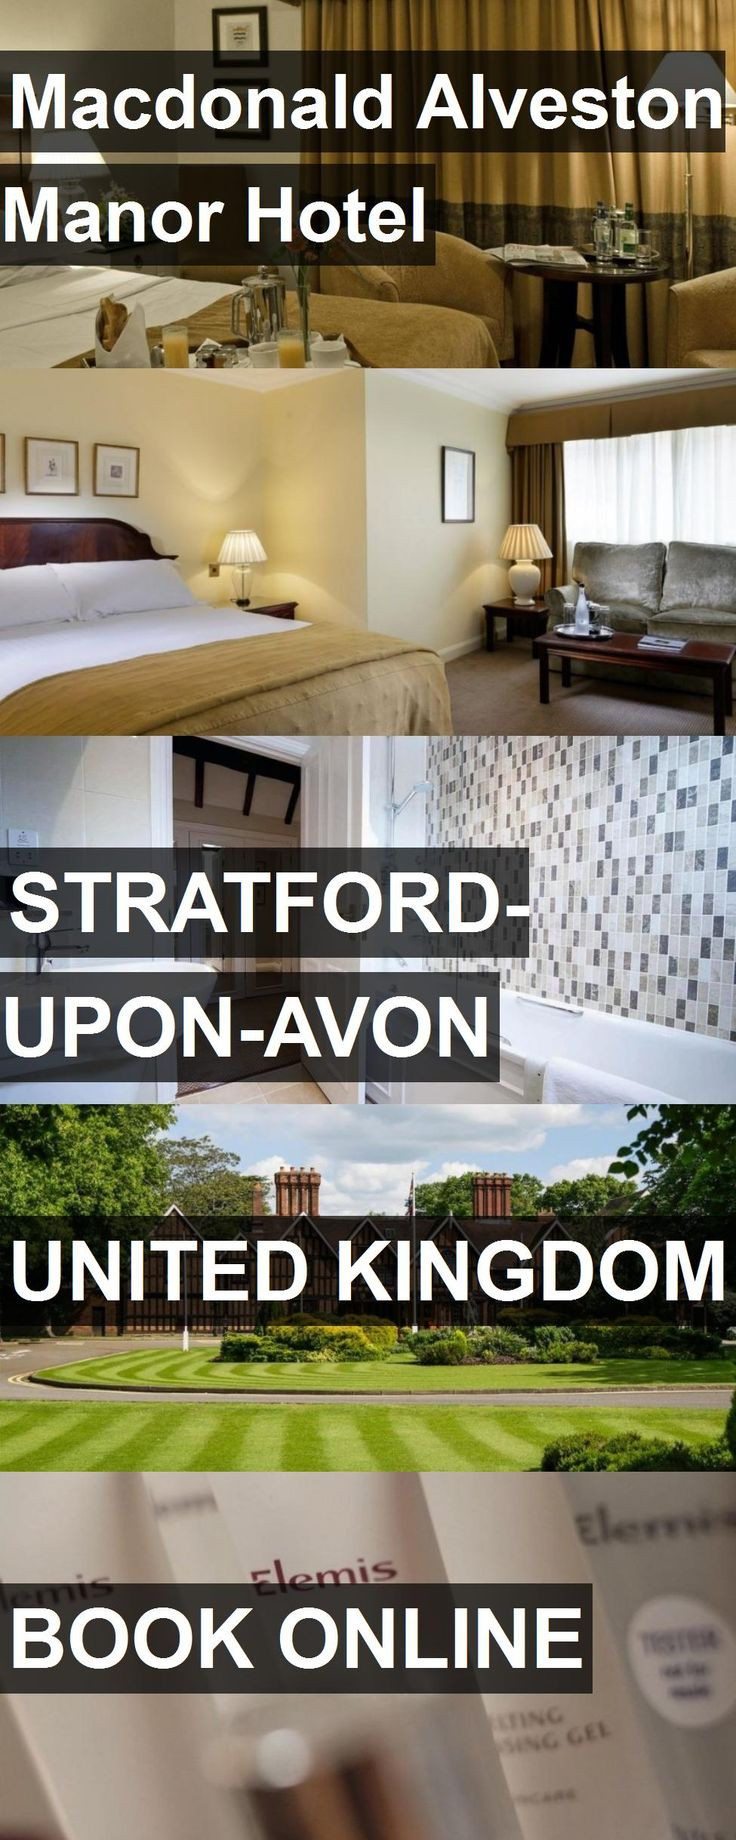 Hotel Macdonald Alveston Manor Hotel in Stratford-Upon-Avon, United Kingdom. For more information, photos, reviews and best prices please follow the link. #UnitedKingdom #Stratford-Upon-Avon #MacdonaldAlvestonManorHotel #hotel #travel #vacation